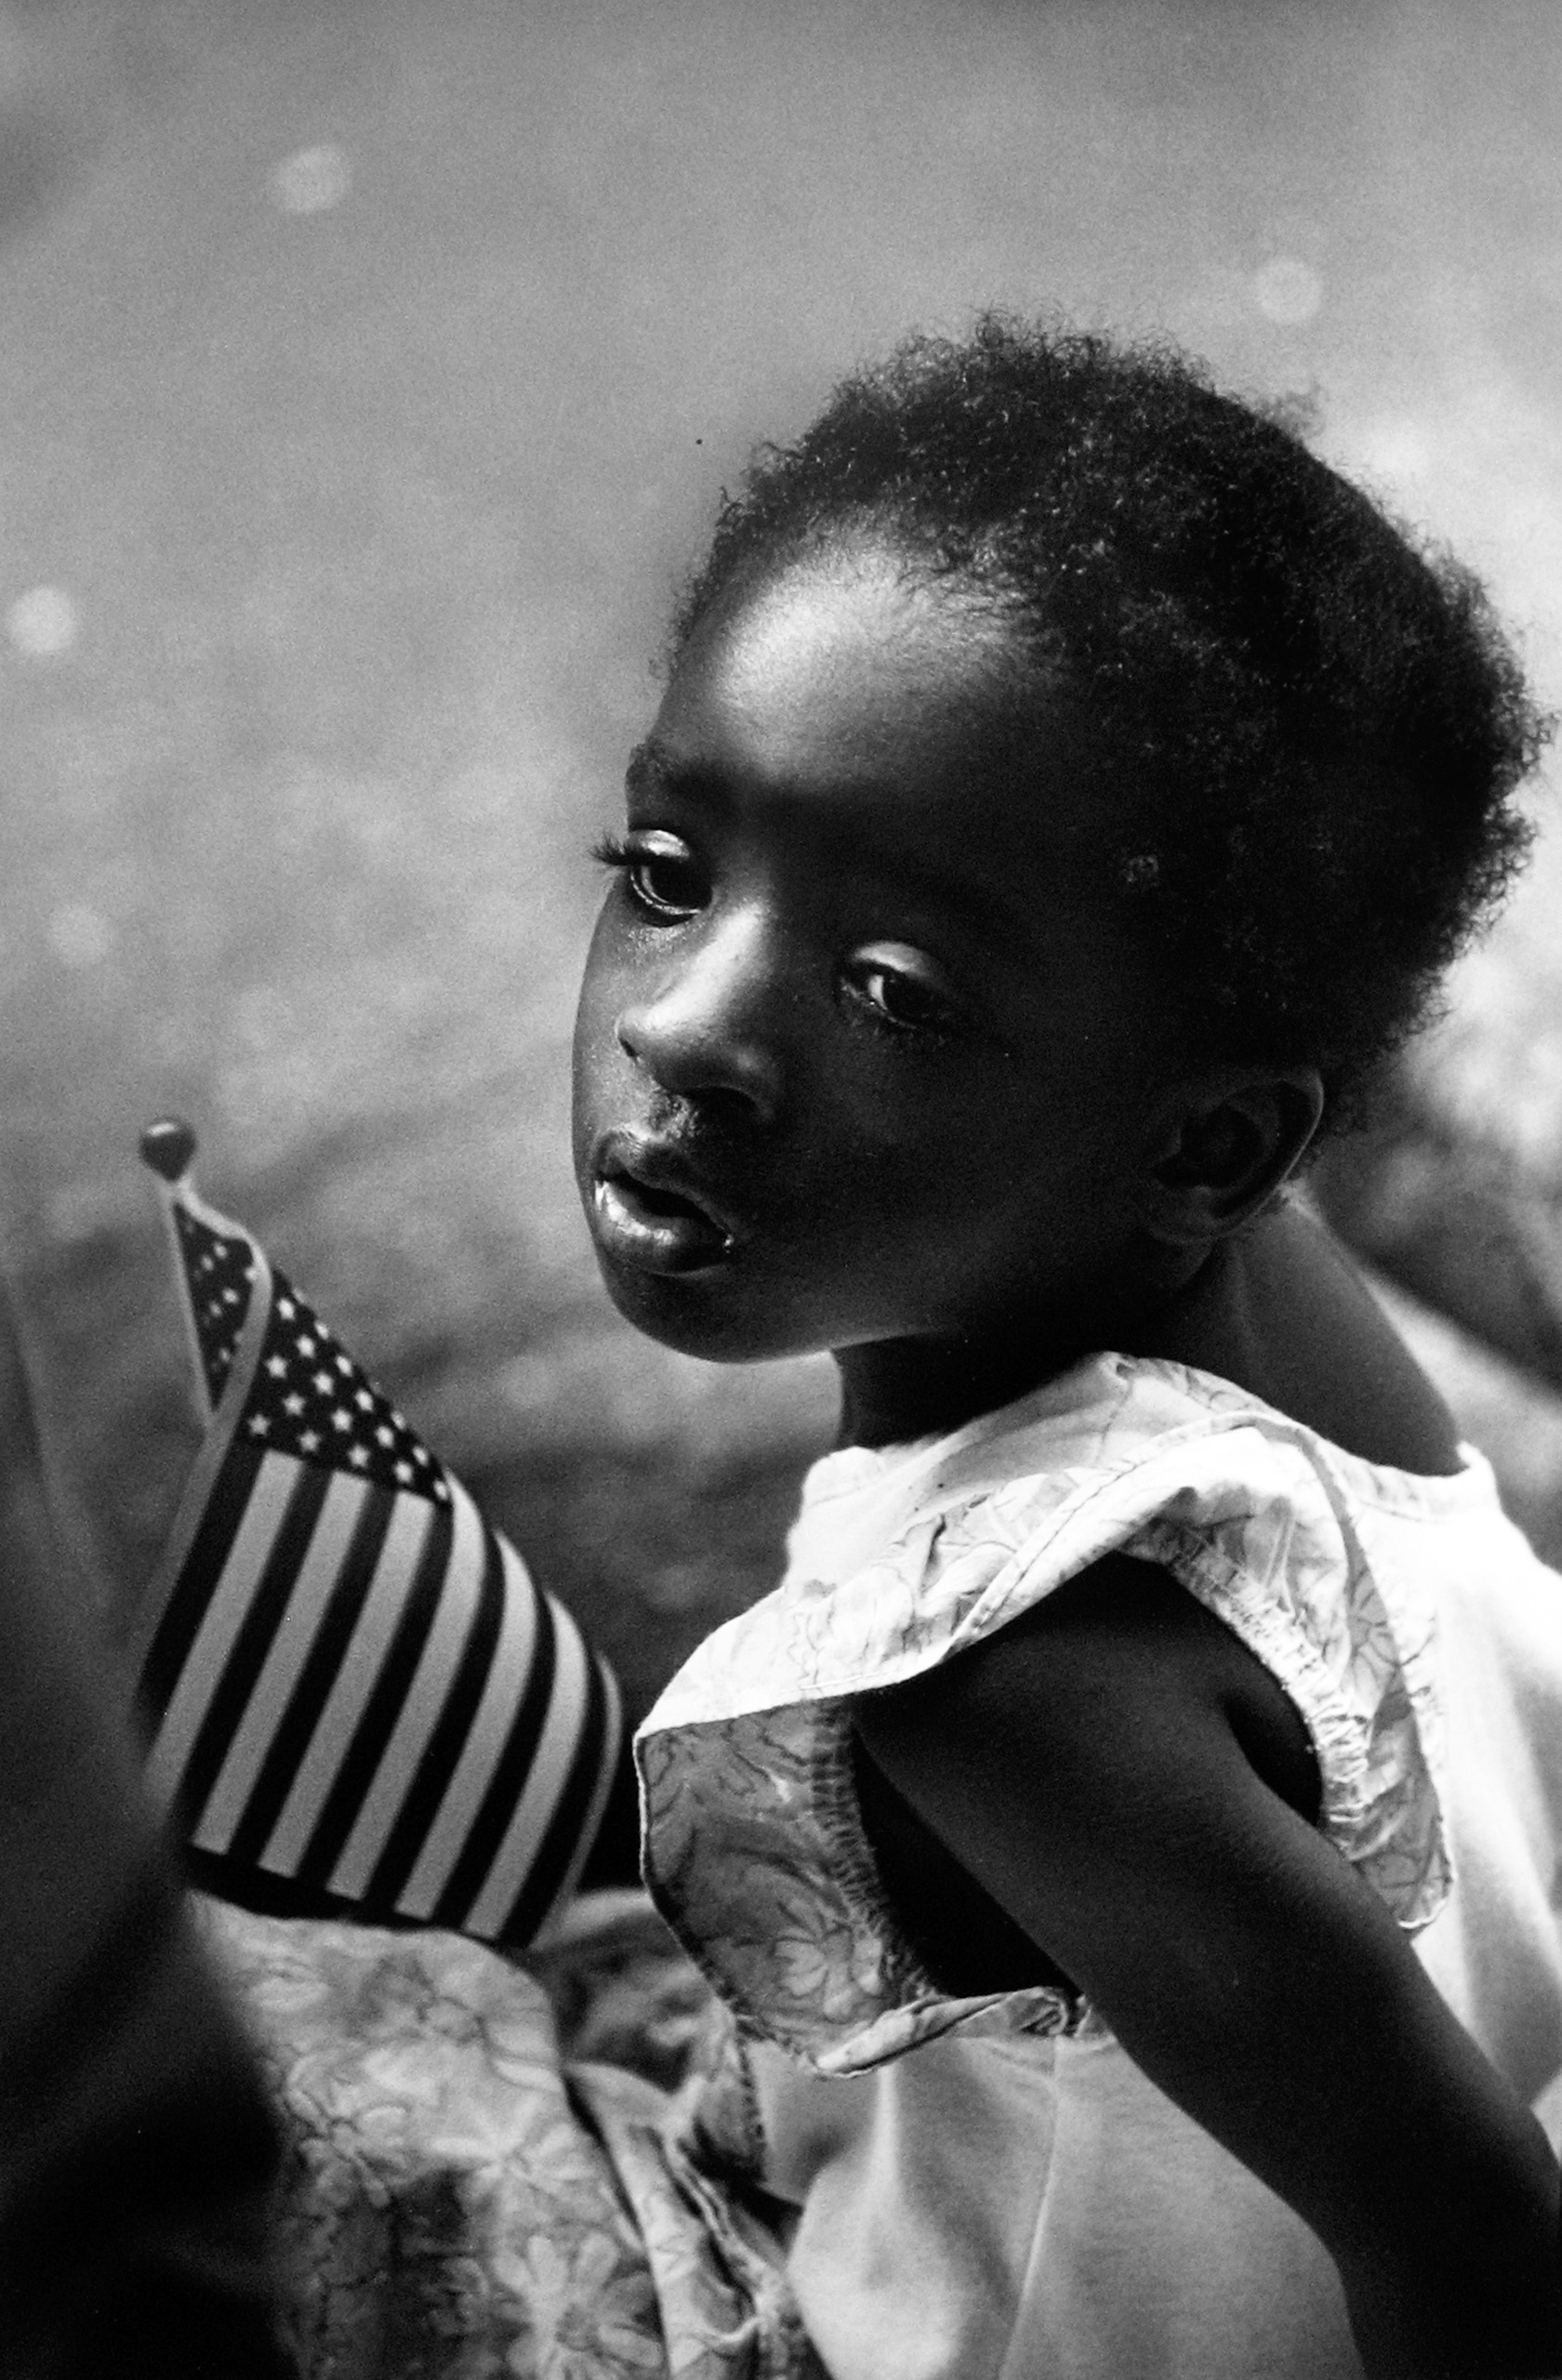 Girl with Flag, 3rd Ward, Houston, 1991